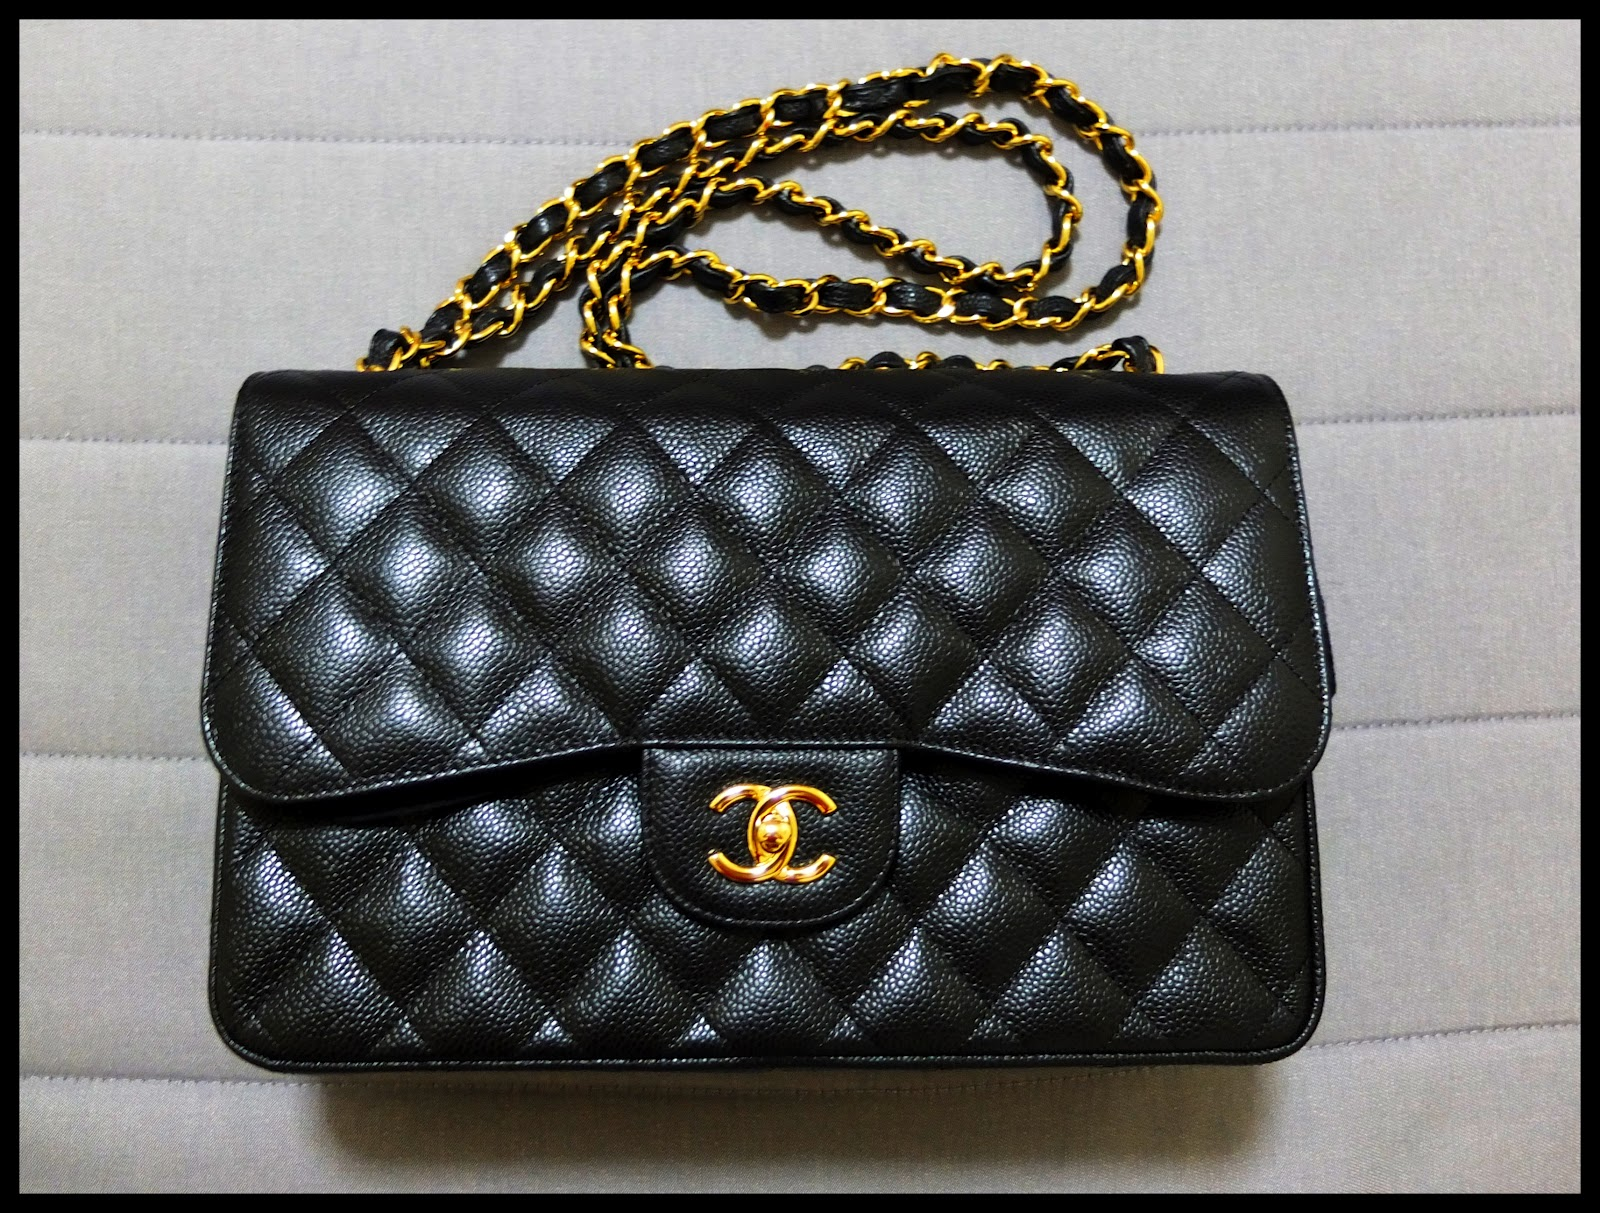 8114a3b2a4f6 Sold) Chanel Jumbo Black Caviar Classic Flap with Gold Hardware ...